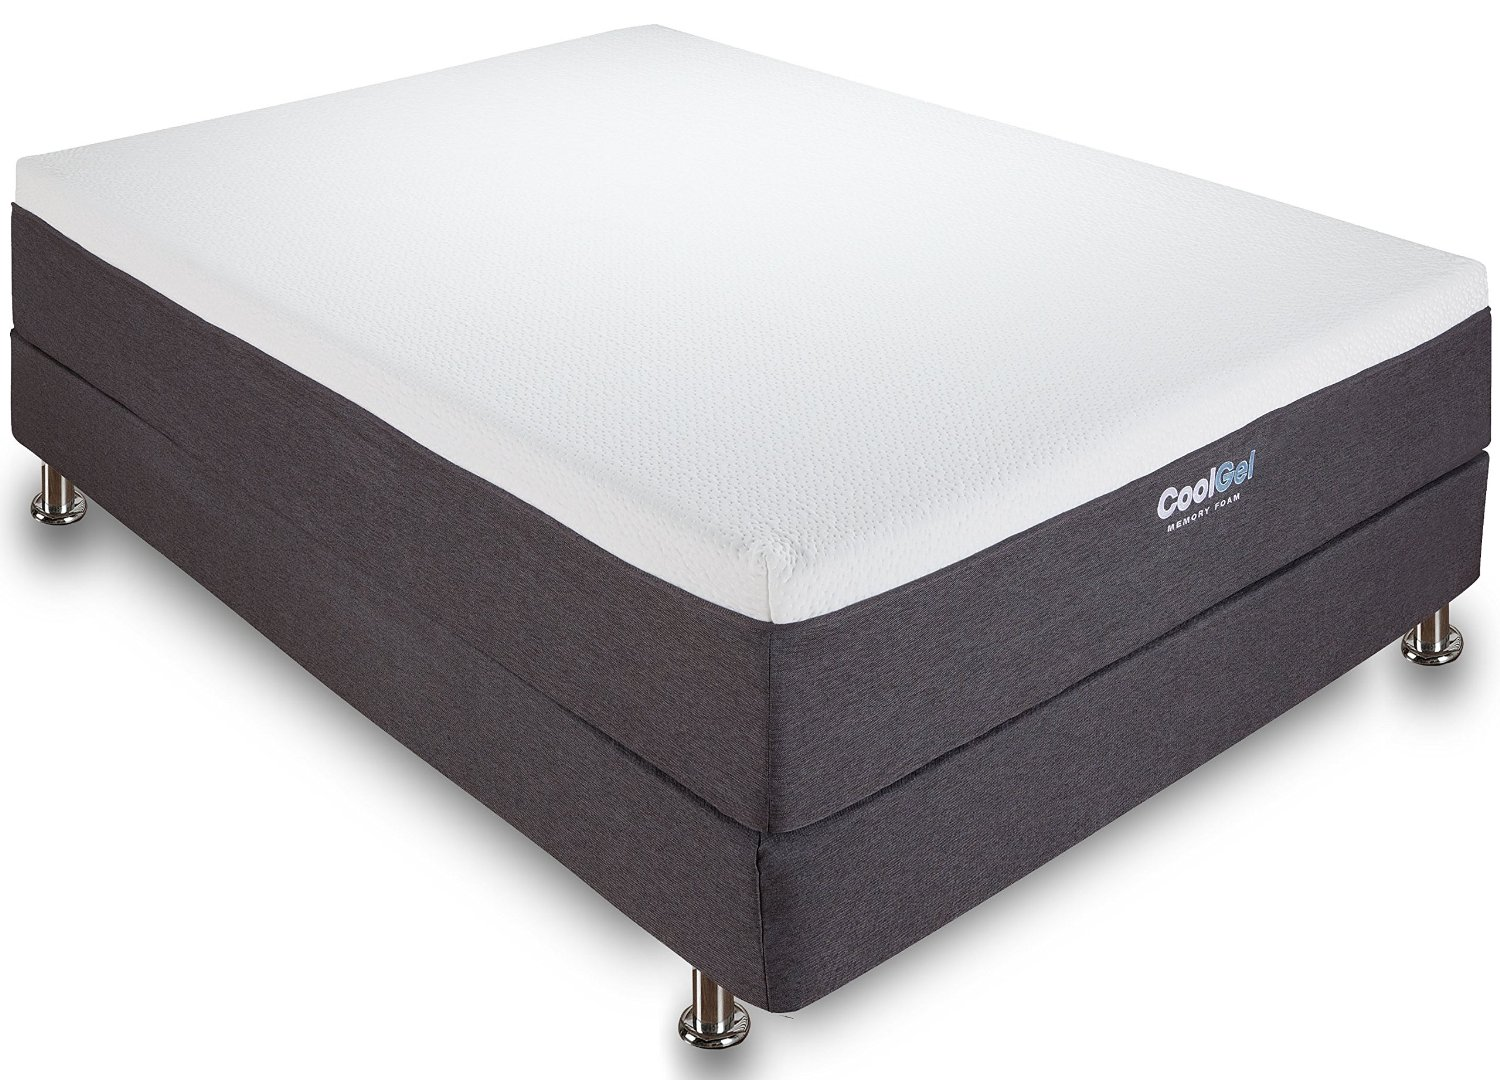 Memory Foam Mattresses Reviews Lucid Mattress Review U2013 Edition Which Lucid Memory Foam